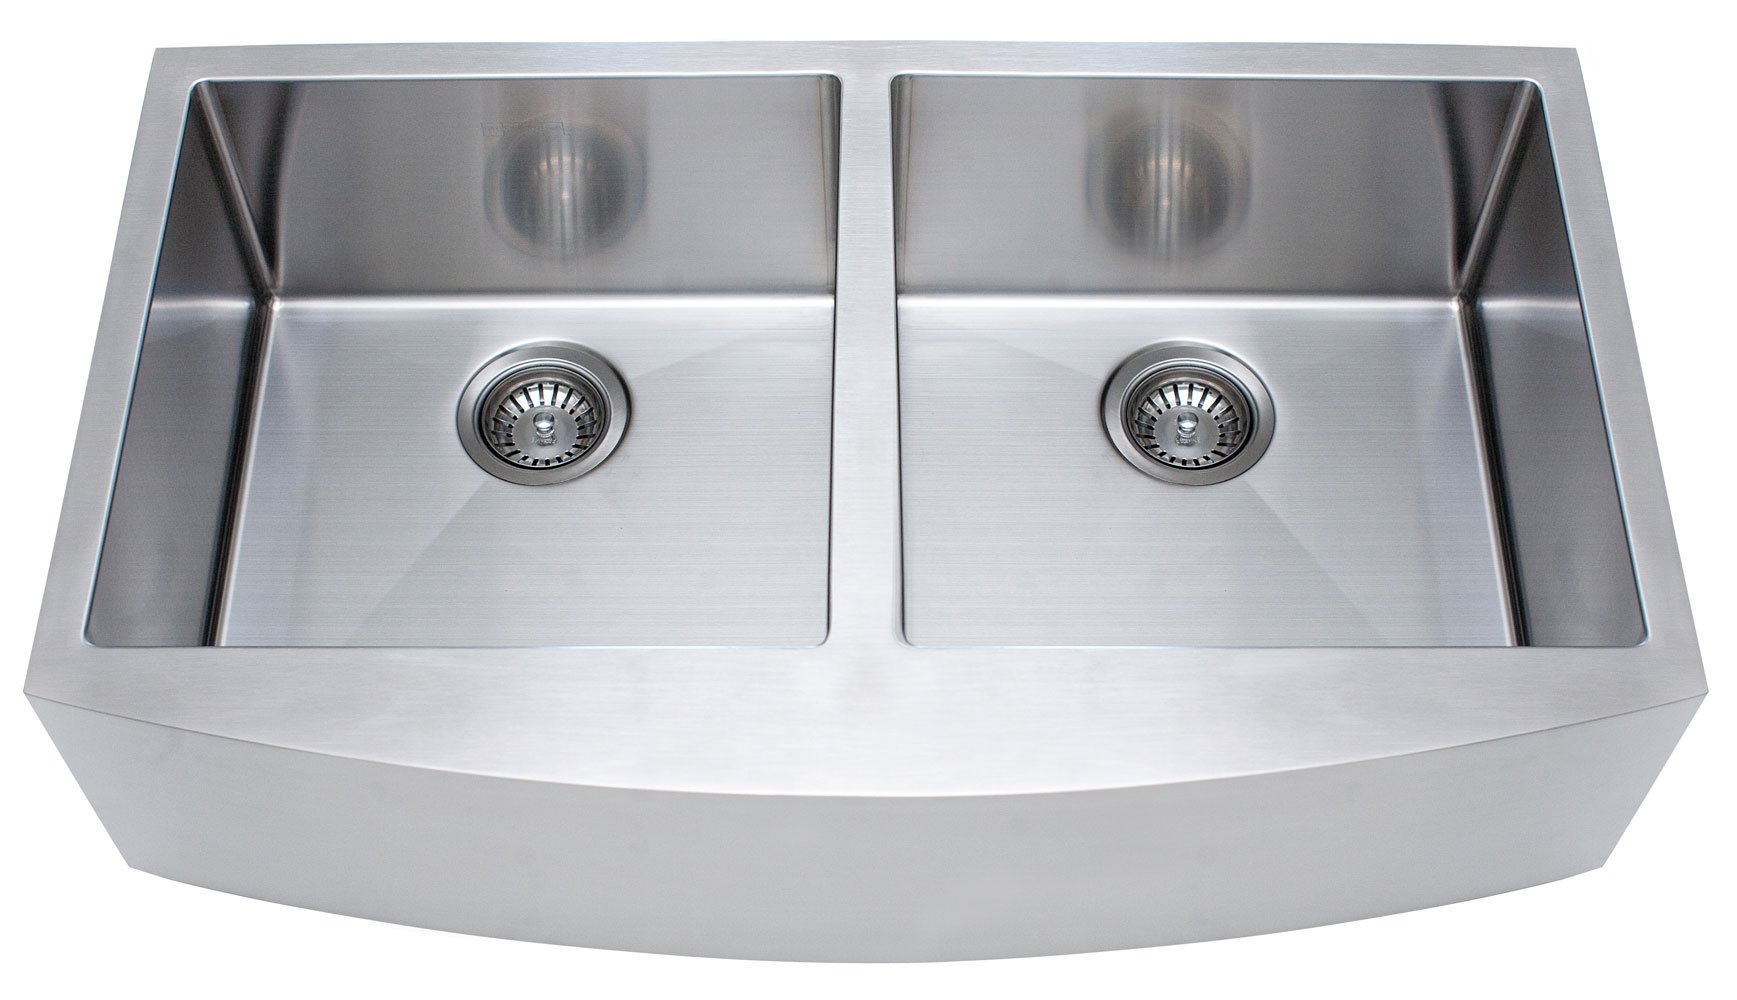 Franke Kinetic 33'' Apron Front Farm House Double Bowl Kitchen Sink, Stainless Steel